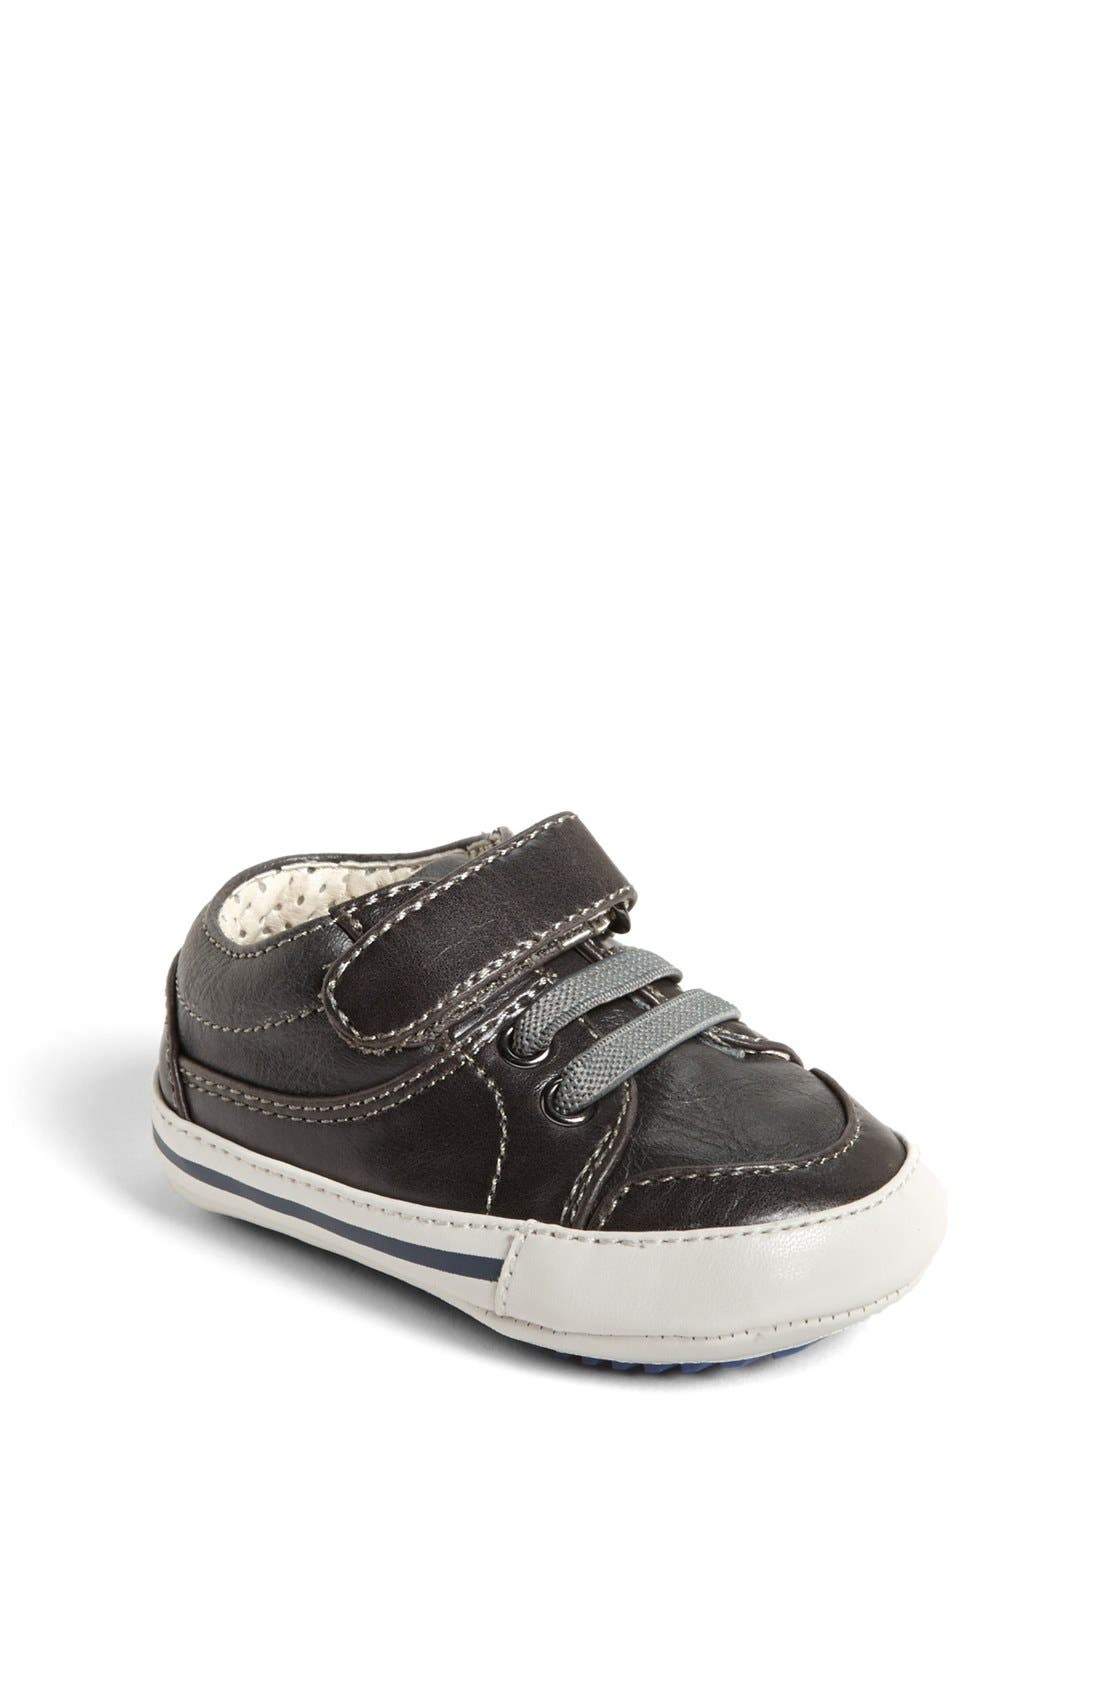 Alternate Image 1 Selected - Cole Haan 'Mini Cory Funsport' Sneaker (Baby)